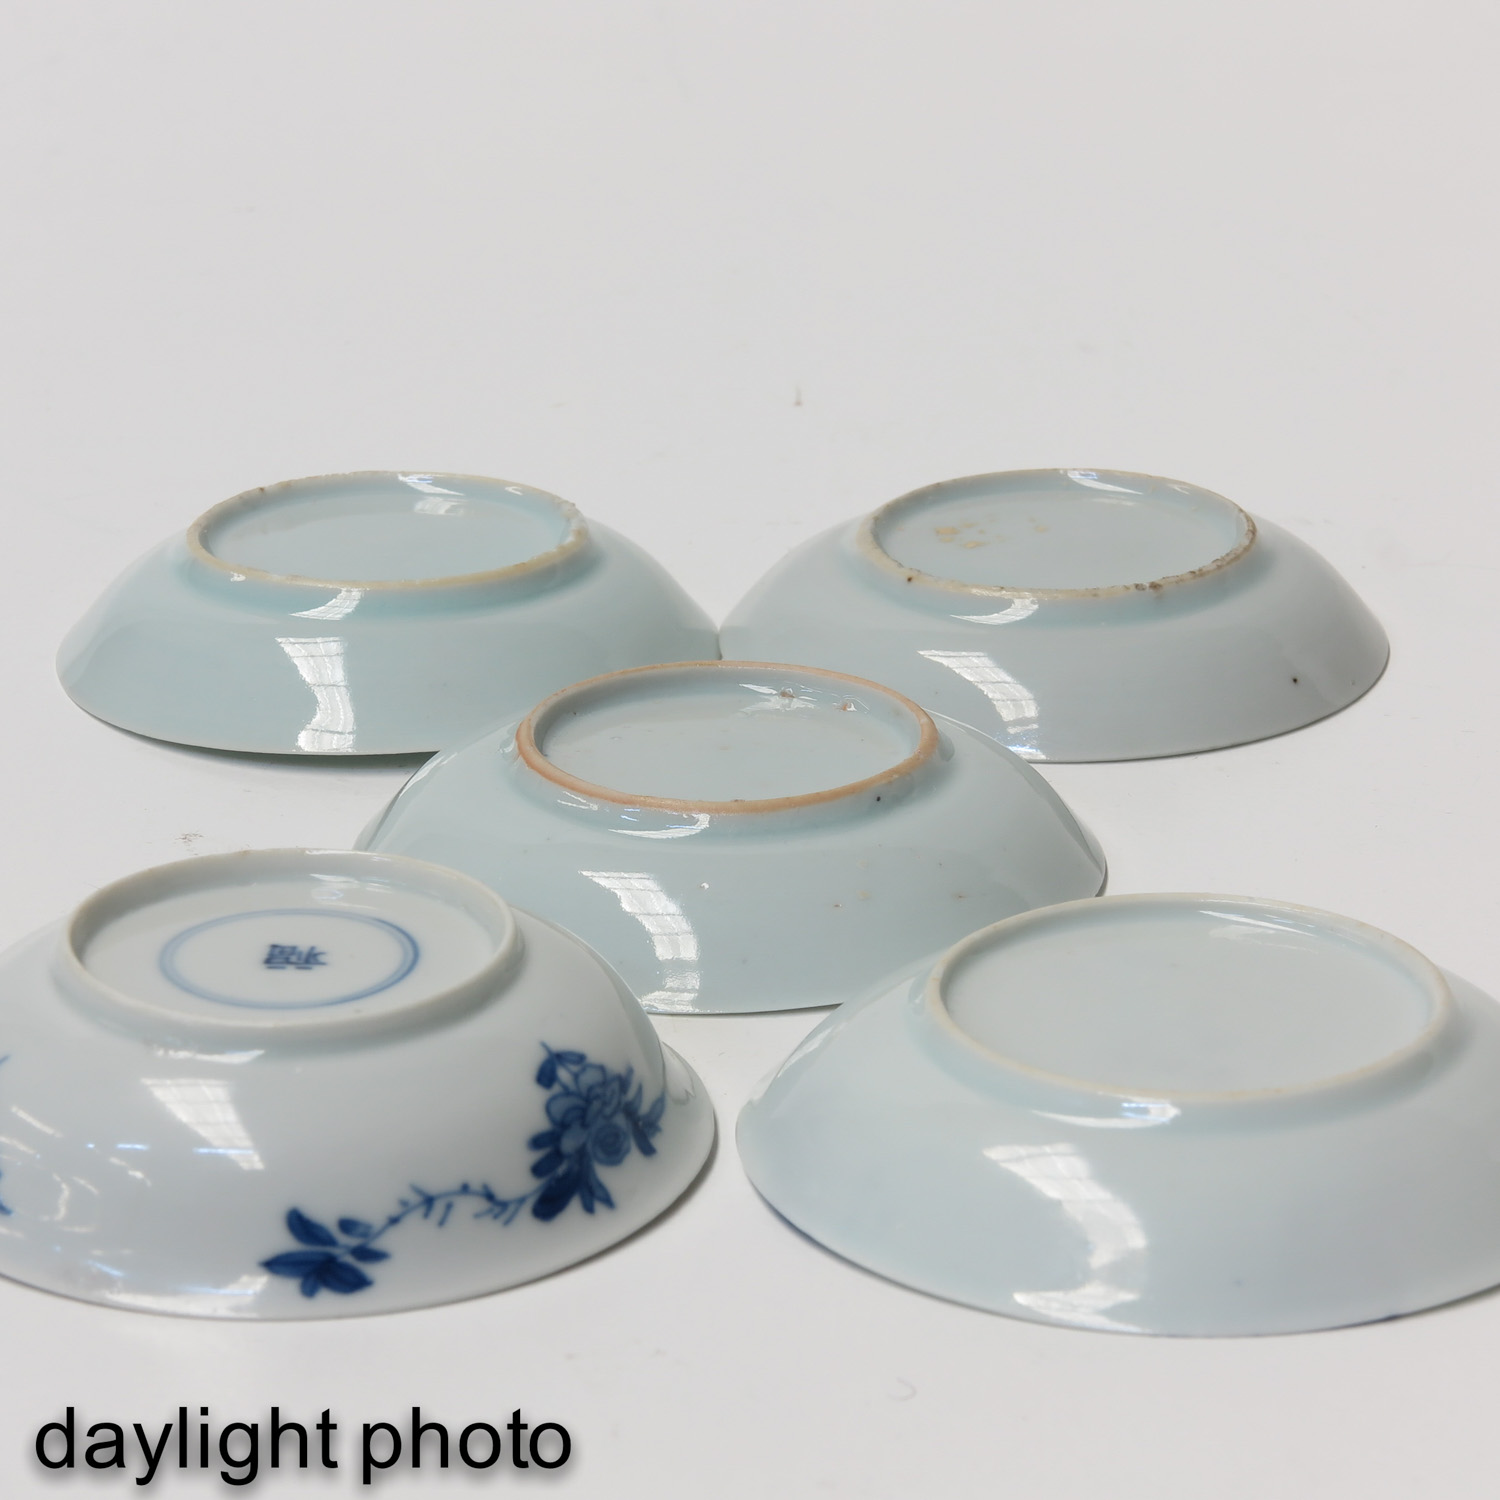 A Collection of 11 Small Plates - Image 10 of 10